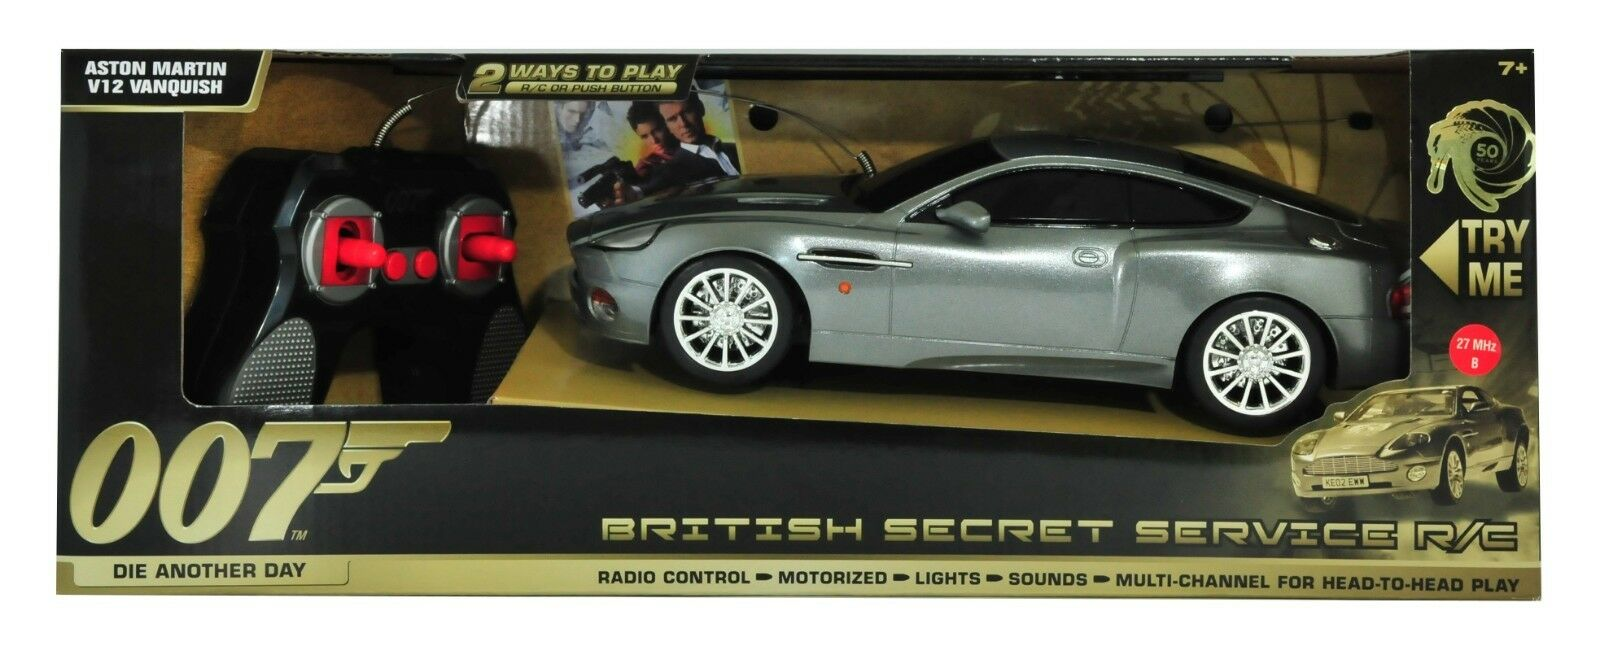 007 james bond secret serviceaston martin vanquish r   c - modell (18 punkte)